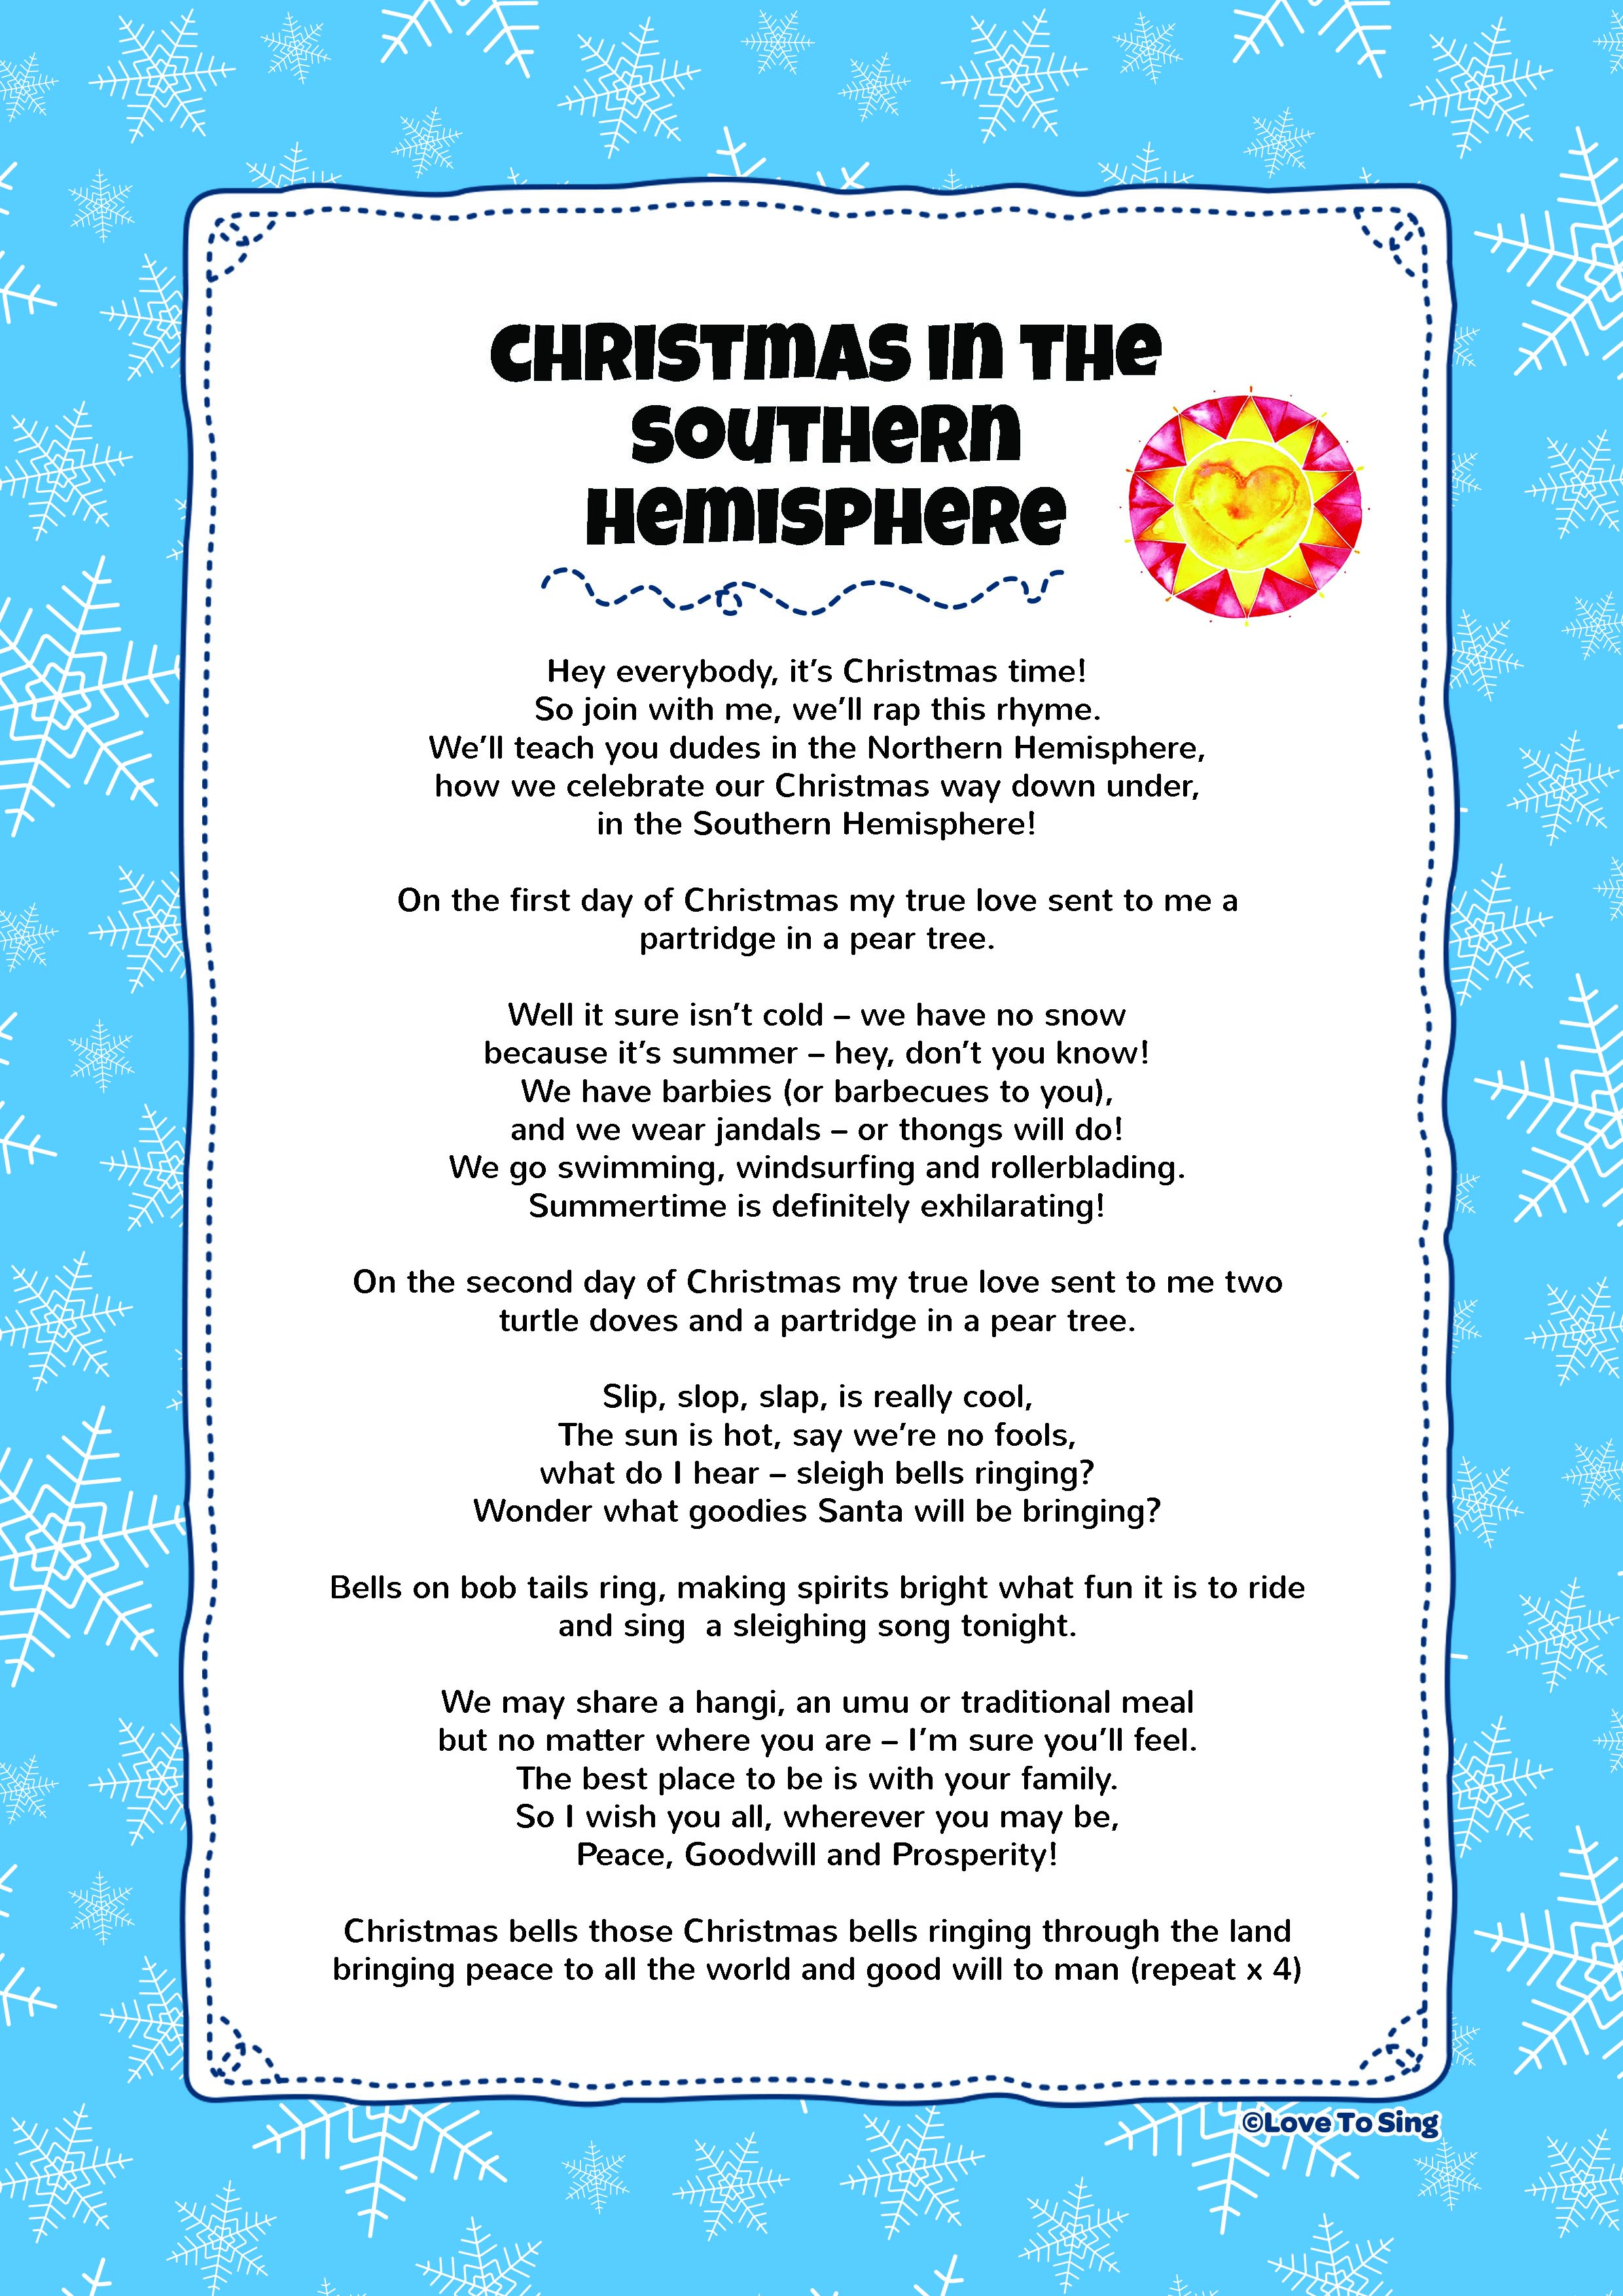 Christmas To Me Lyrics.Christmas In The Southern Hemisphere Kids Video Song With